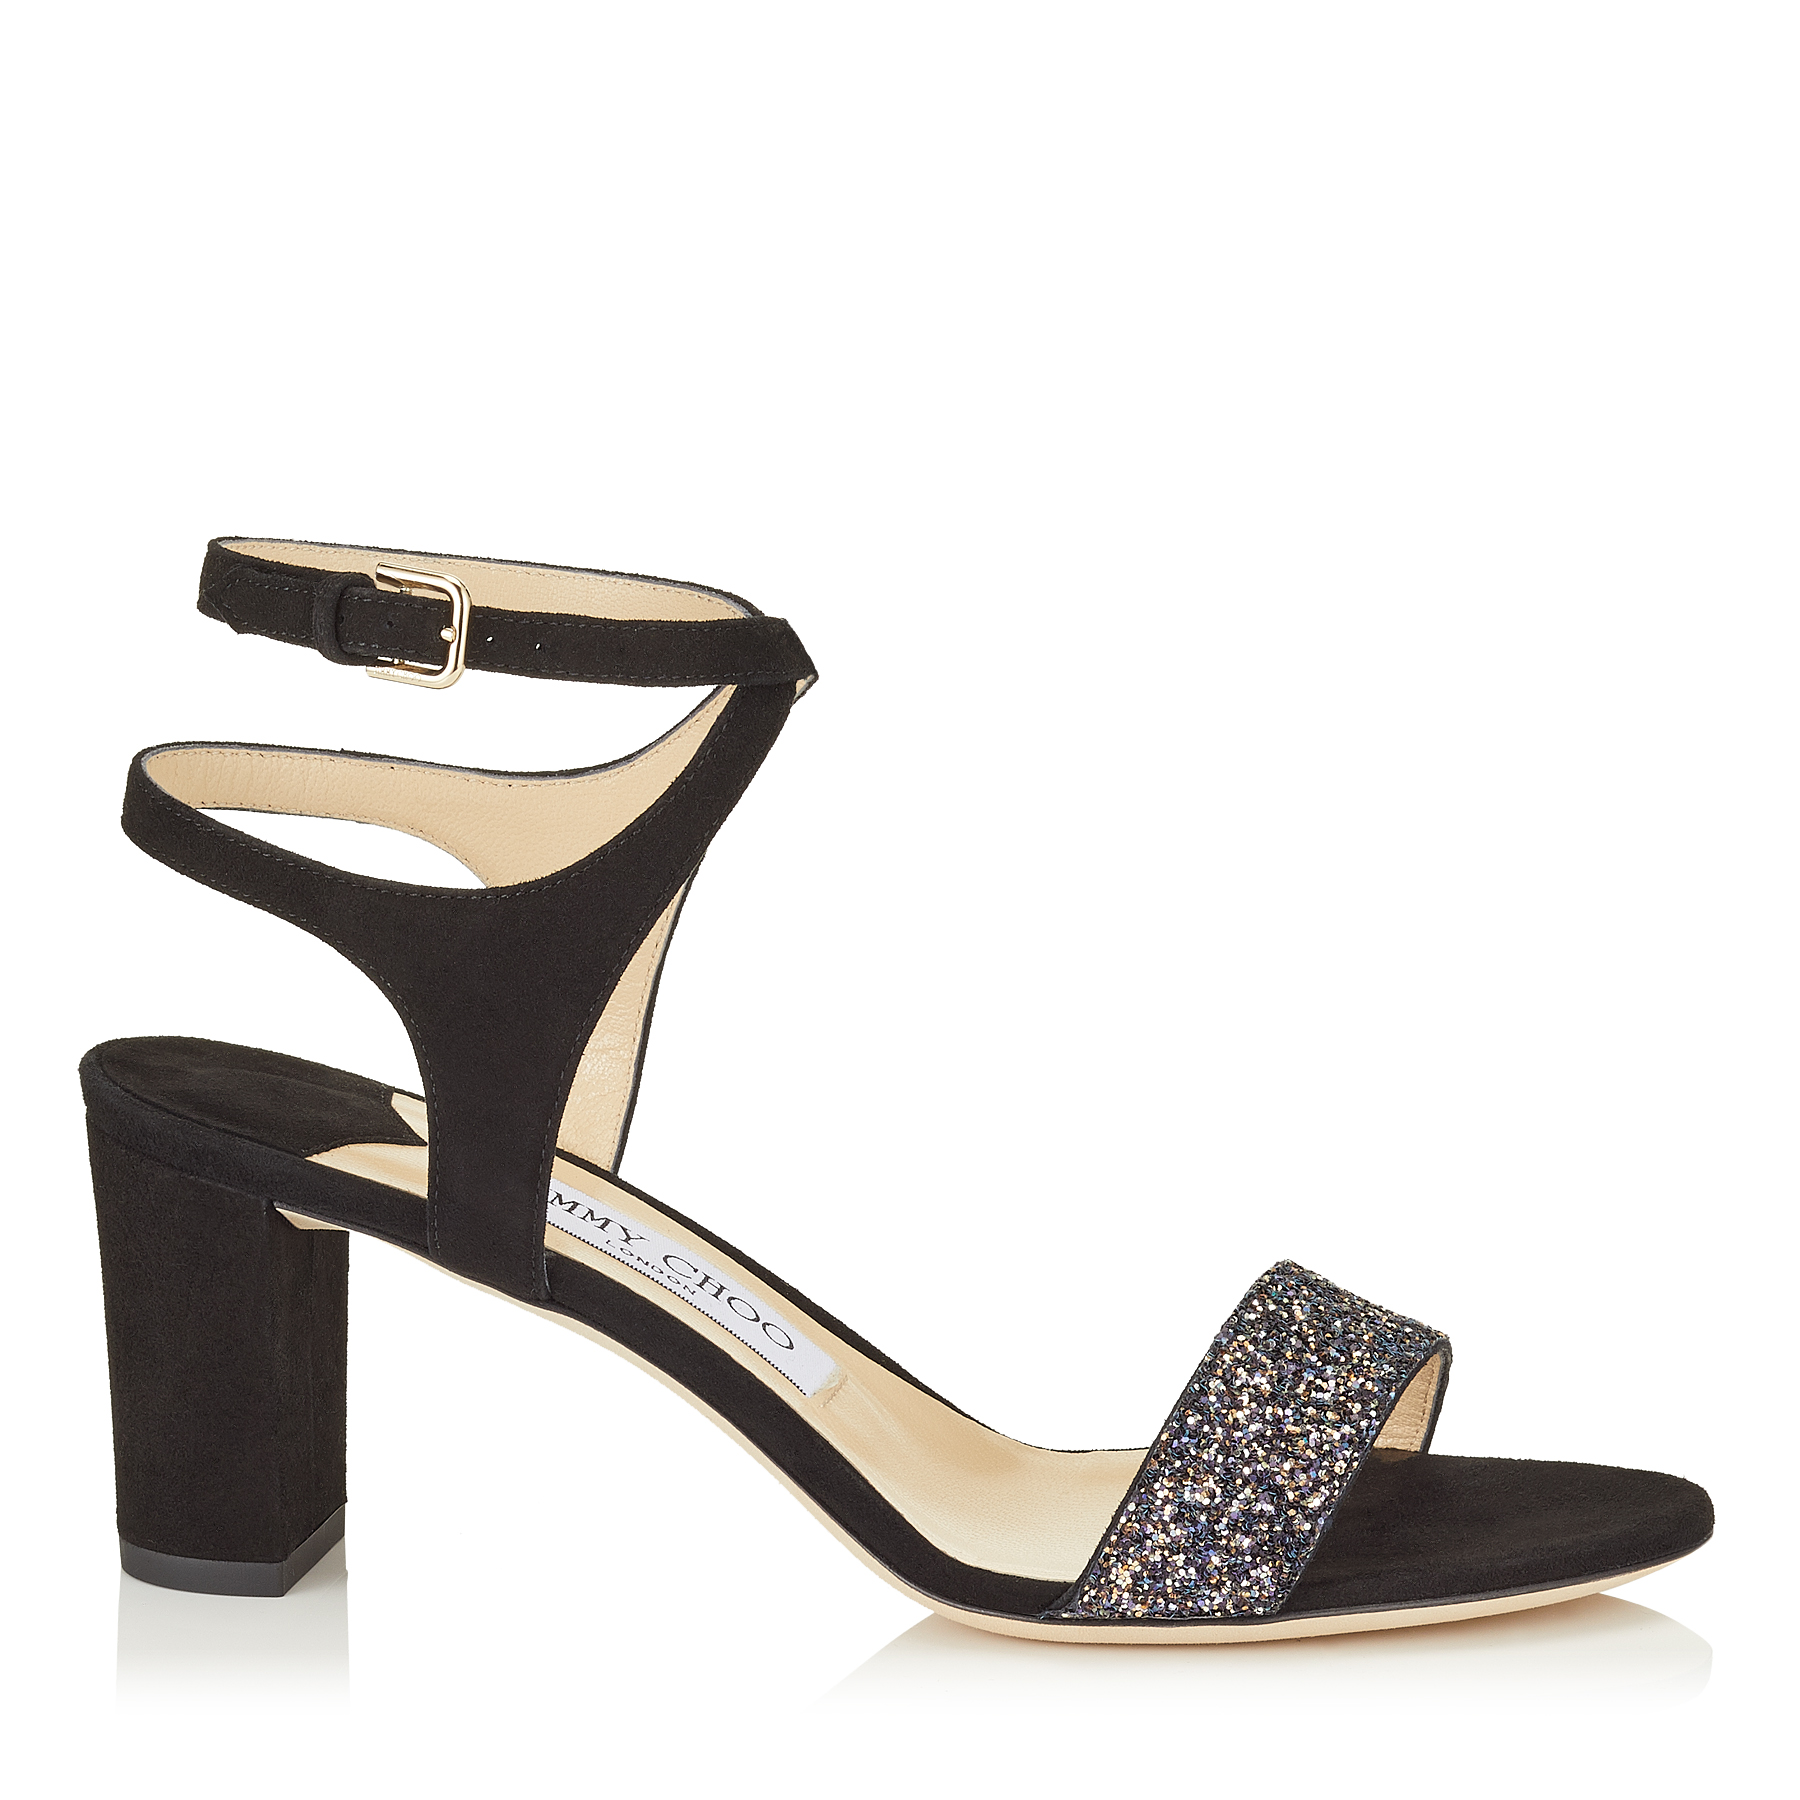 MARINE 65 Black Suede and Twilight Glitzy Glitter Fabric Sandals by Jimmy Choo